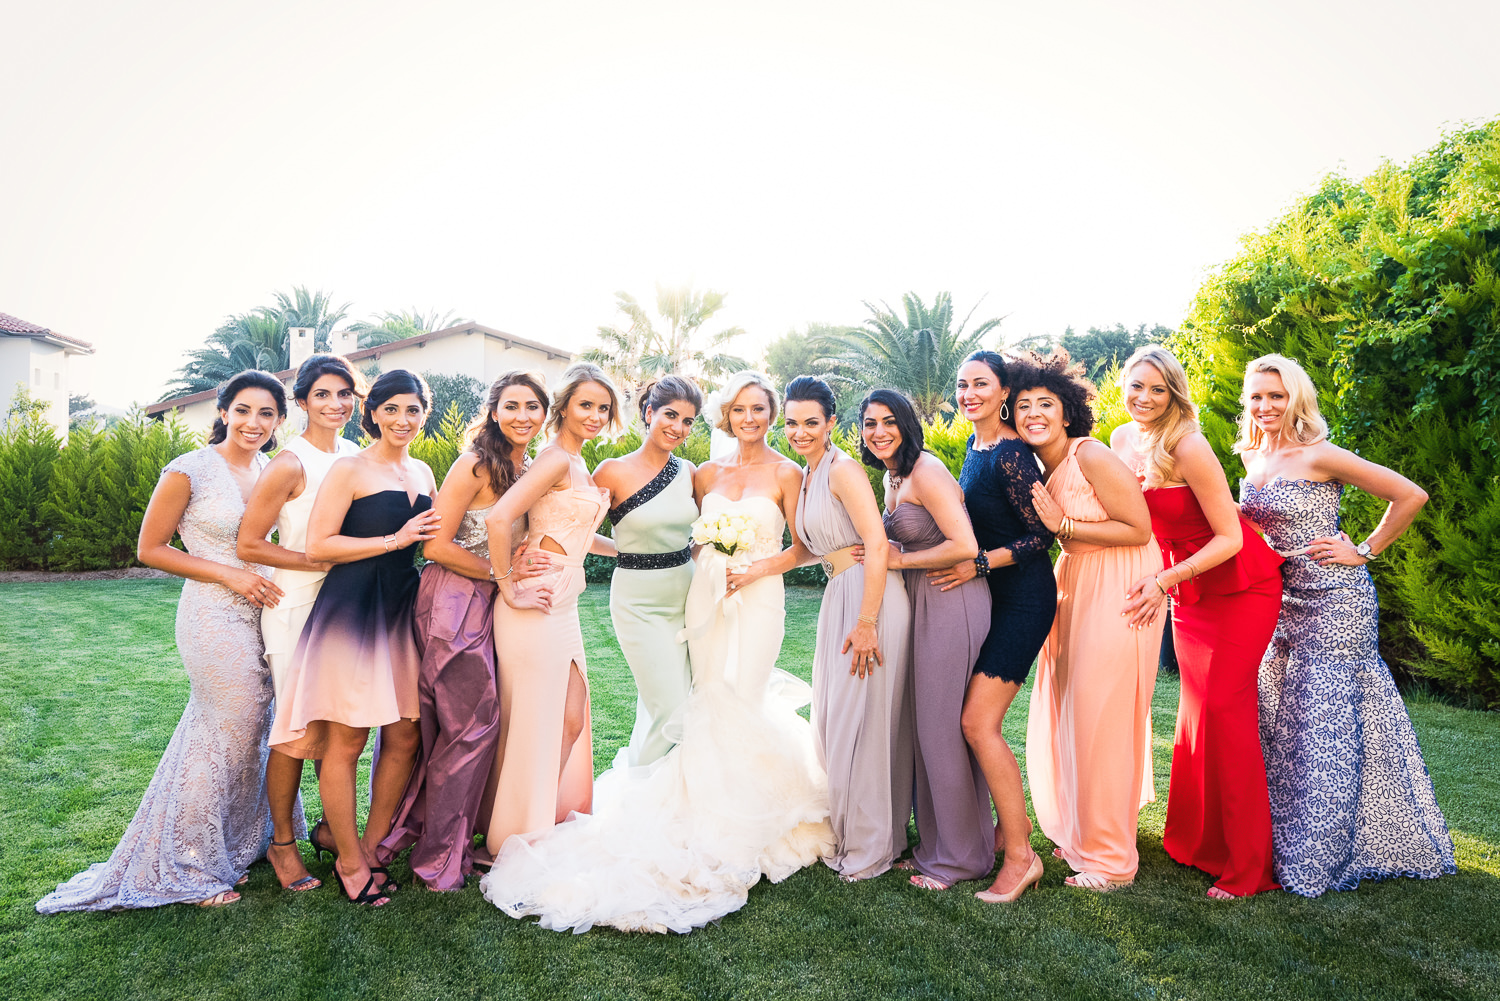 Turkey Wedding - Bridal Party